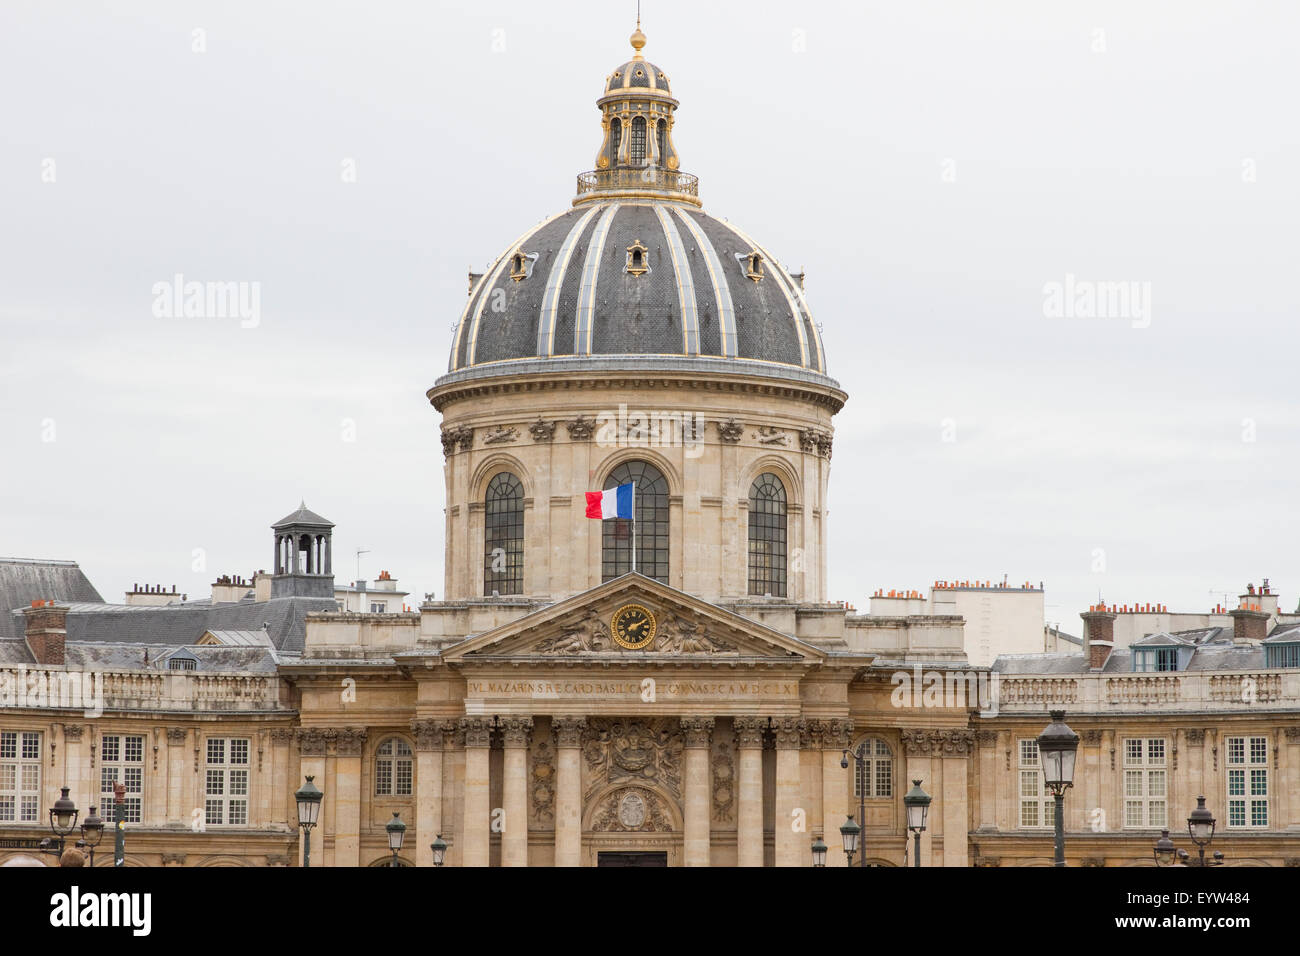 Cupola of the Institut de France as seen from the Pont des Arts in Paris, France. - Stock Image